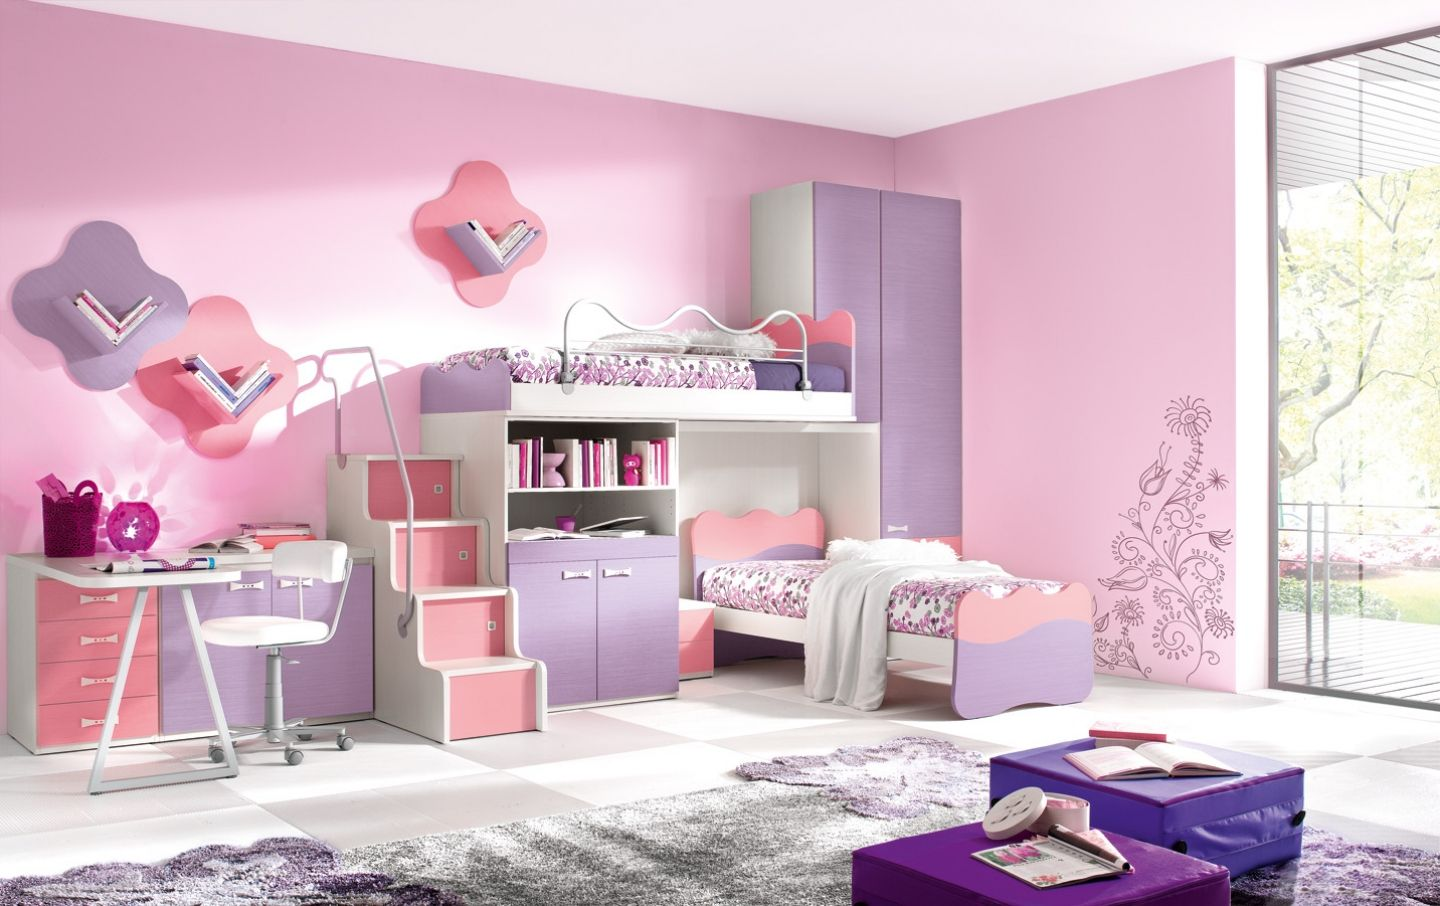 Bedroom For Girls 98 quartos de princesas decorados com sofisticao e elegncia dream roomsdream bedroomgirls Interior Decoration For Girl Bedroom 5 Girls Bedroom Sets Ideas